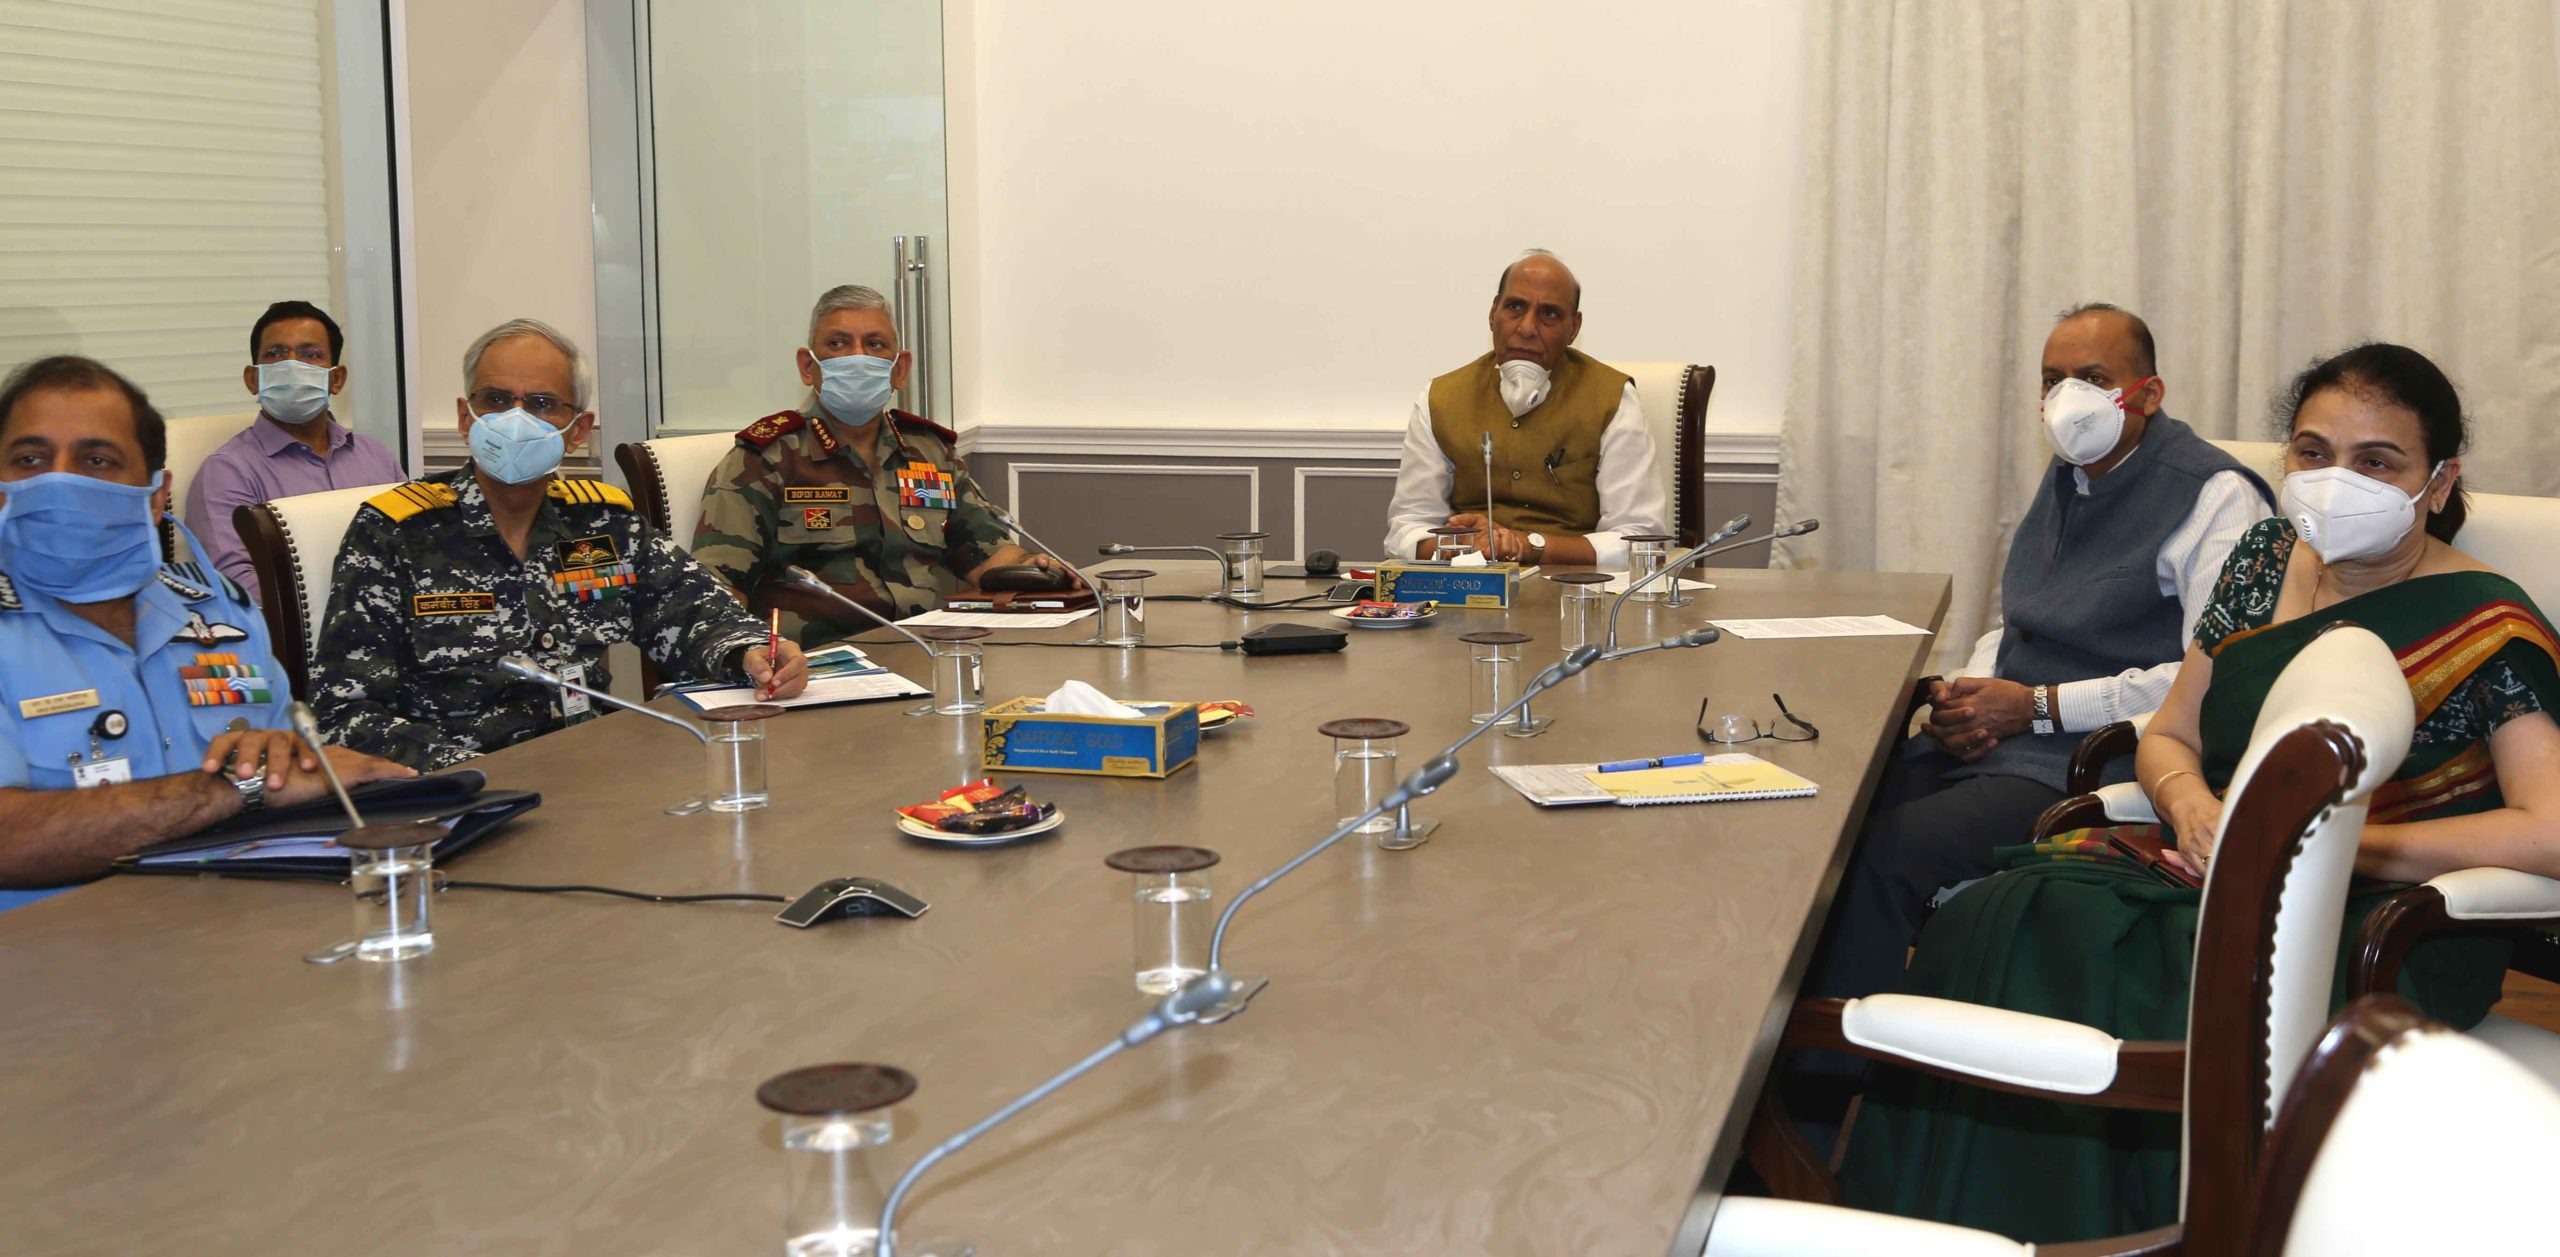 Defence Minister Rajnath Singh reviews operational and COVID-19 preparedness of armed forces